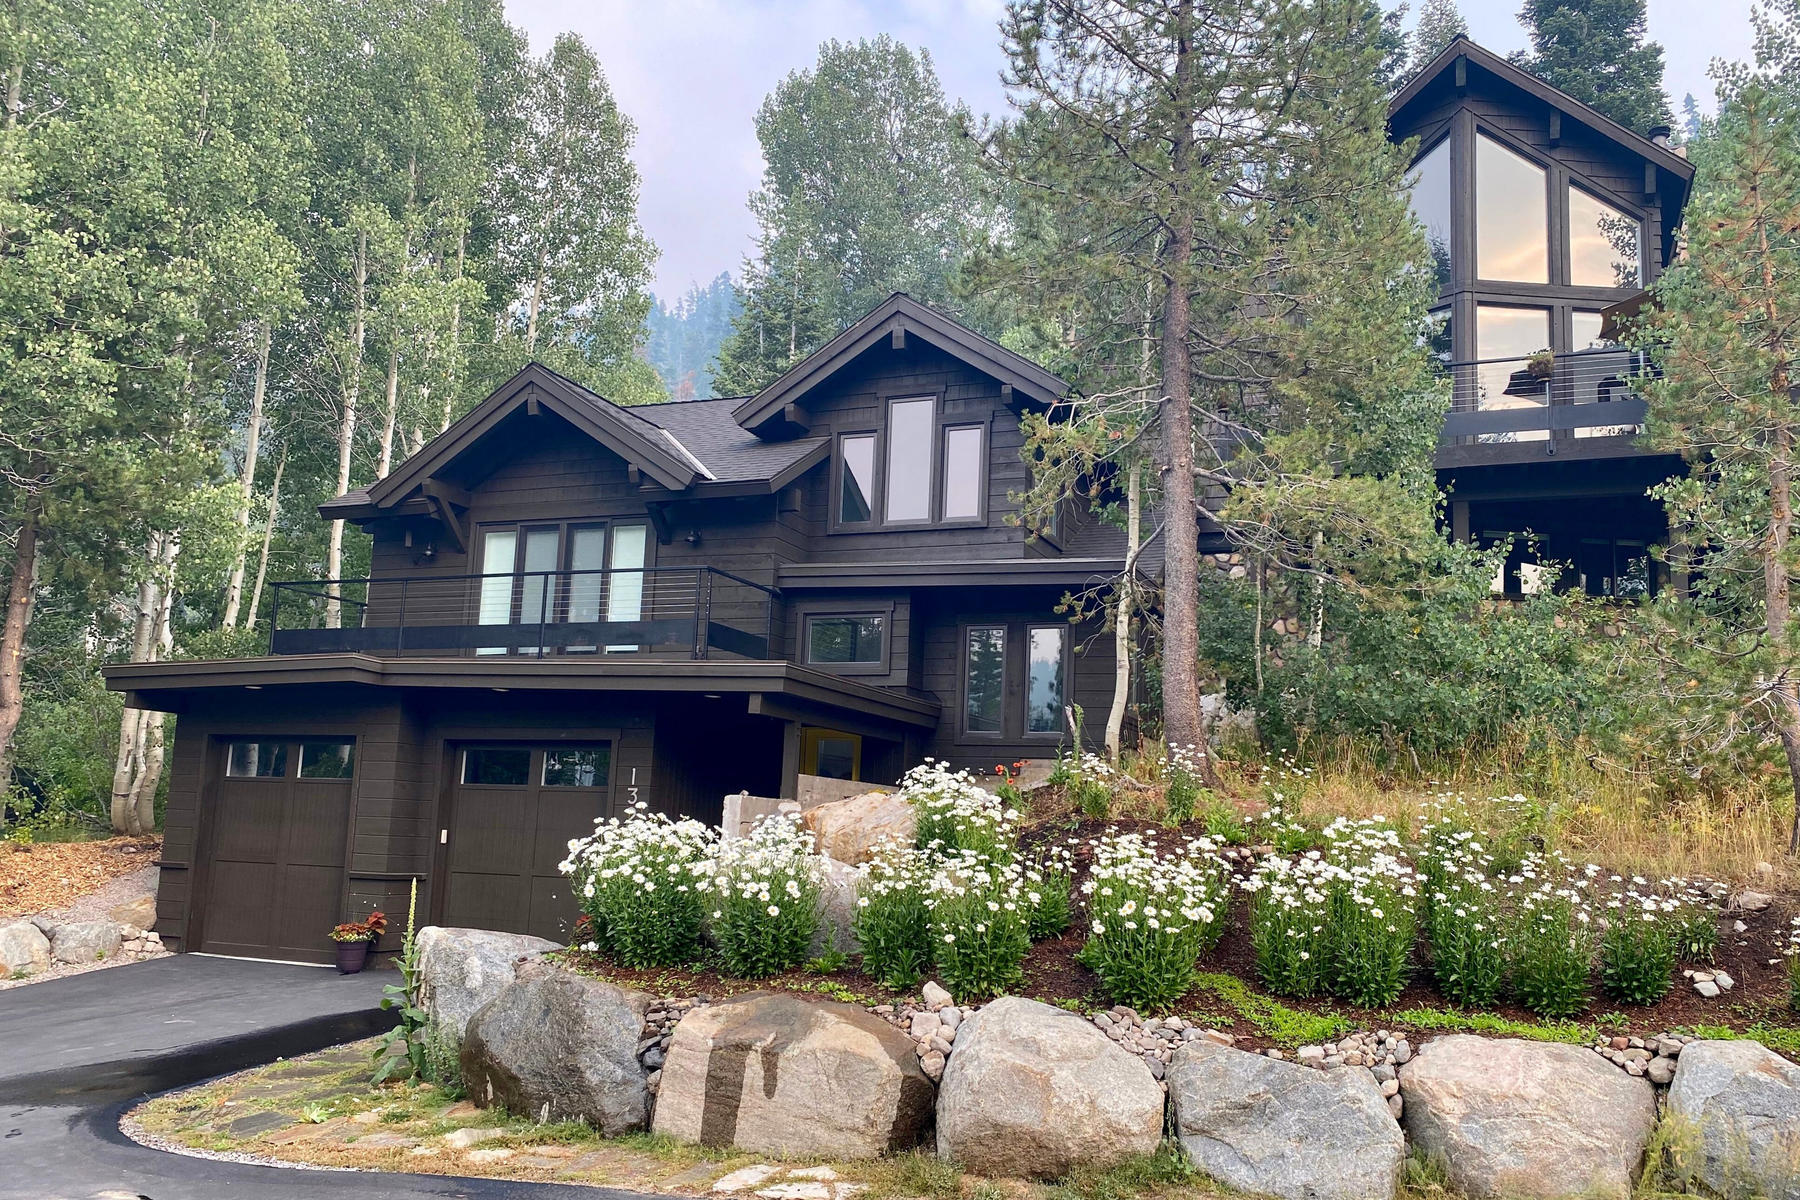 Single Family Homes for Active at Alpine Meadows Scandinavian Modern 1329 Pine Trail Alpine Meadows, California 96146 United States